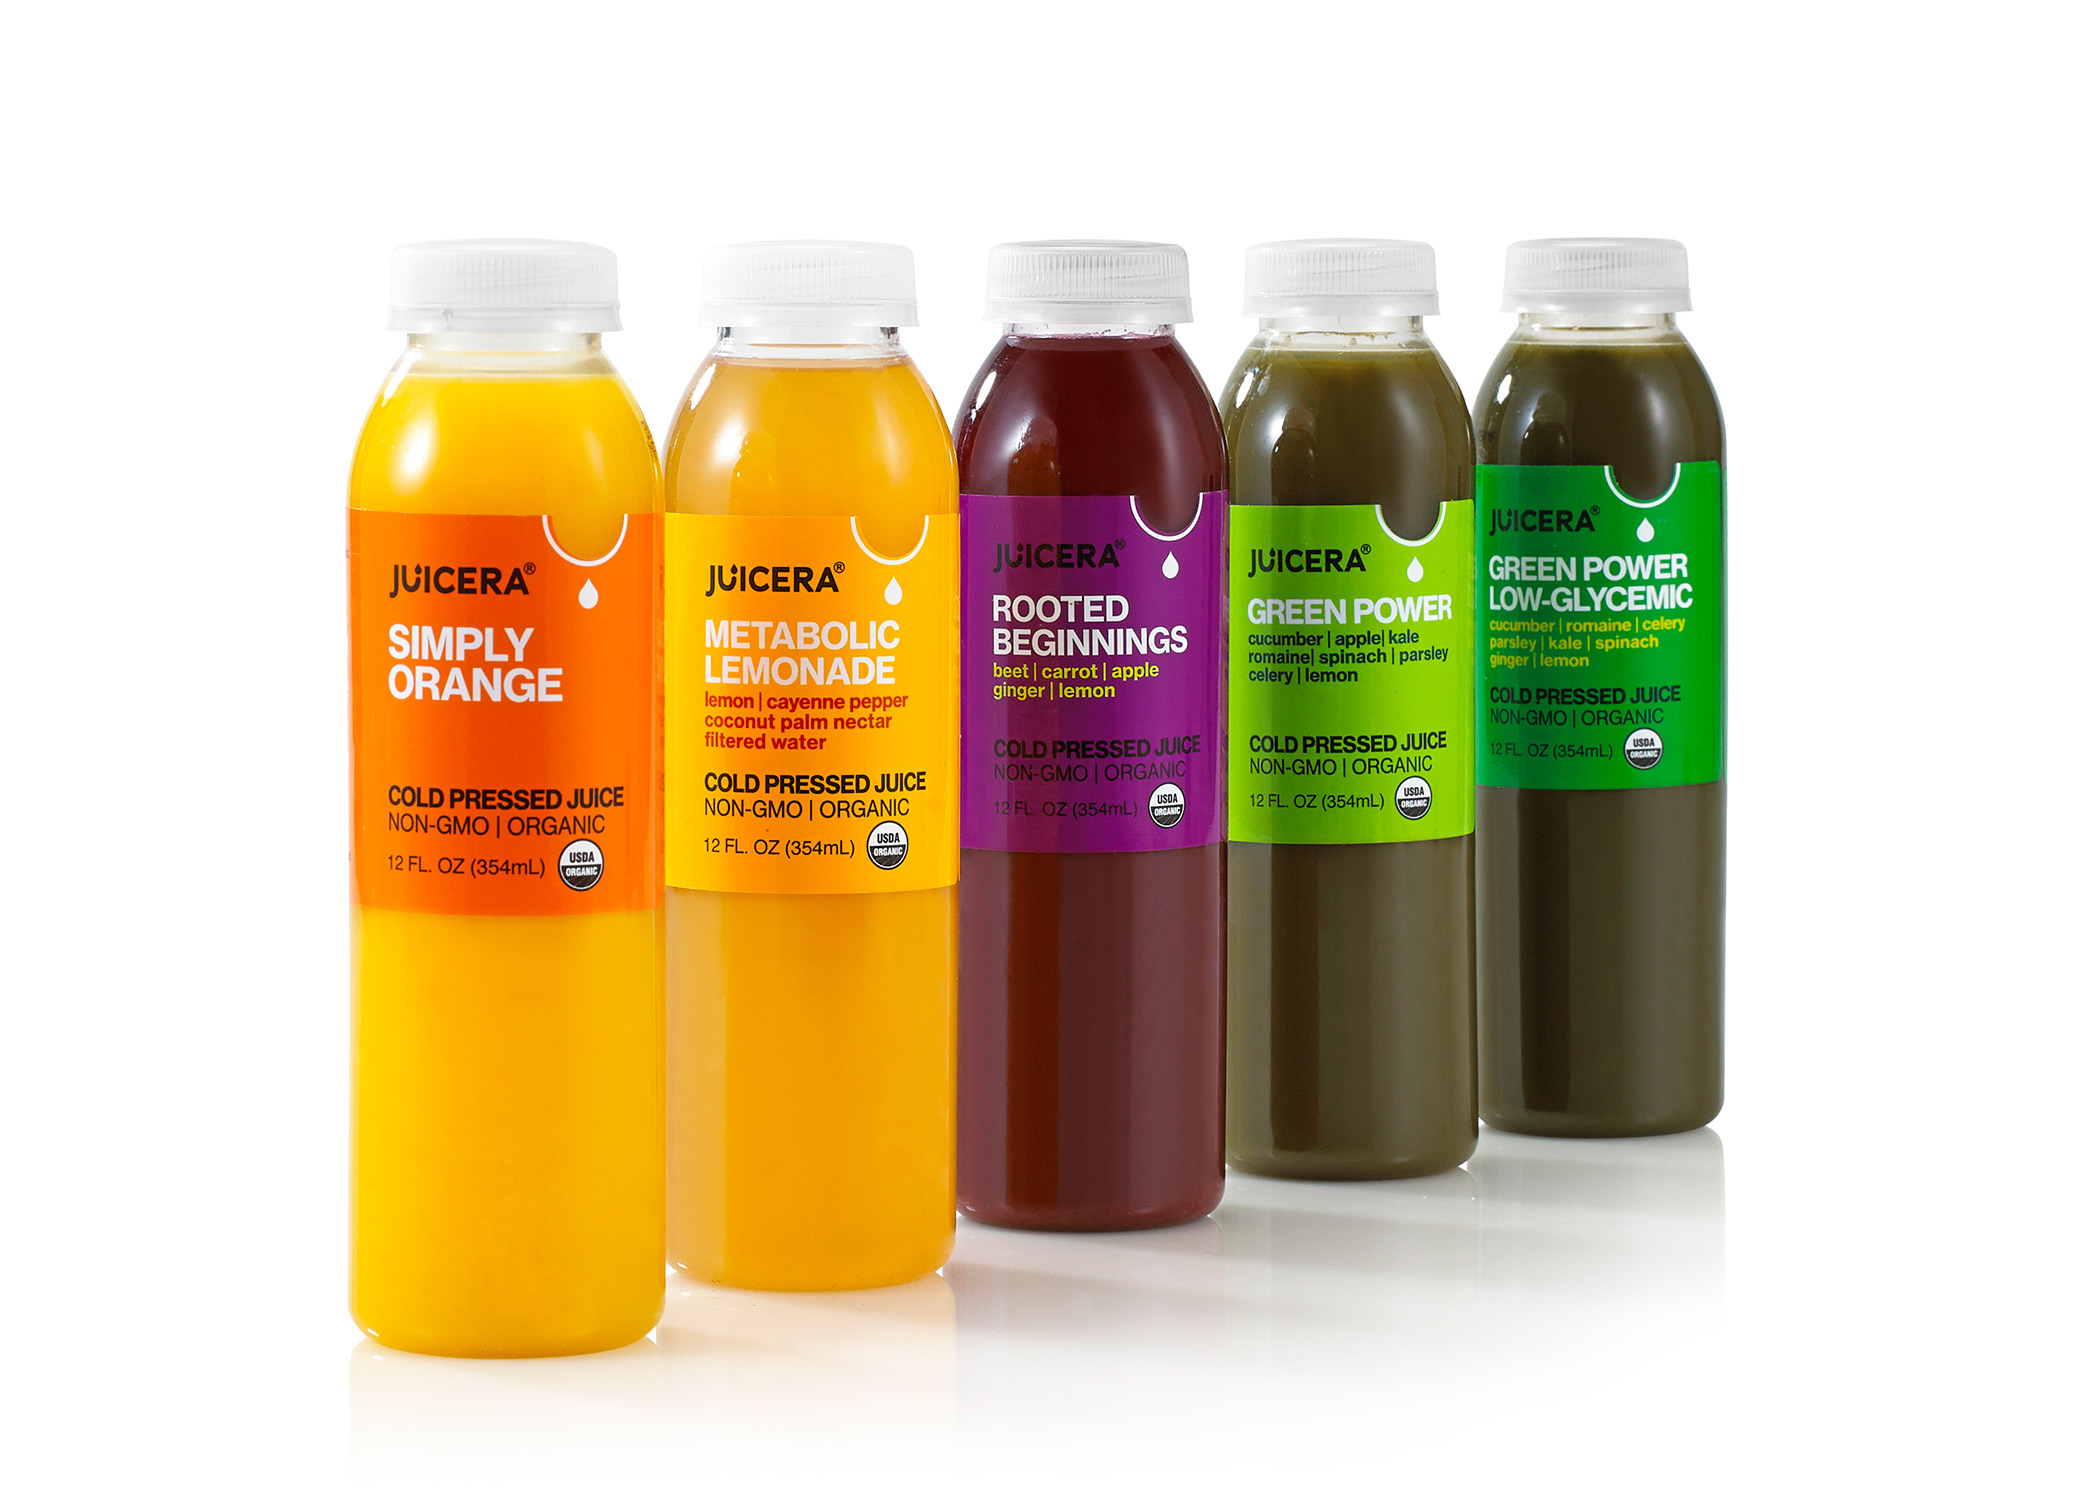 Juicera food package design showing 5 different flavors in an angled row with bottle labels in yellow, purple, and green.